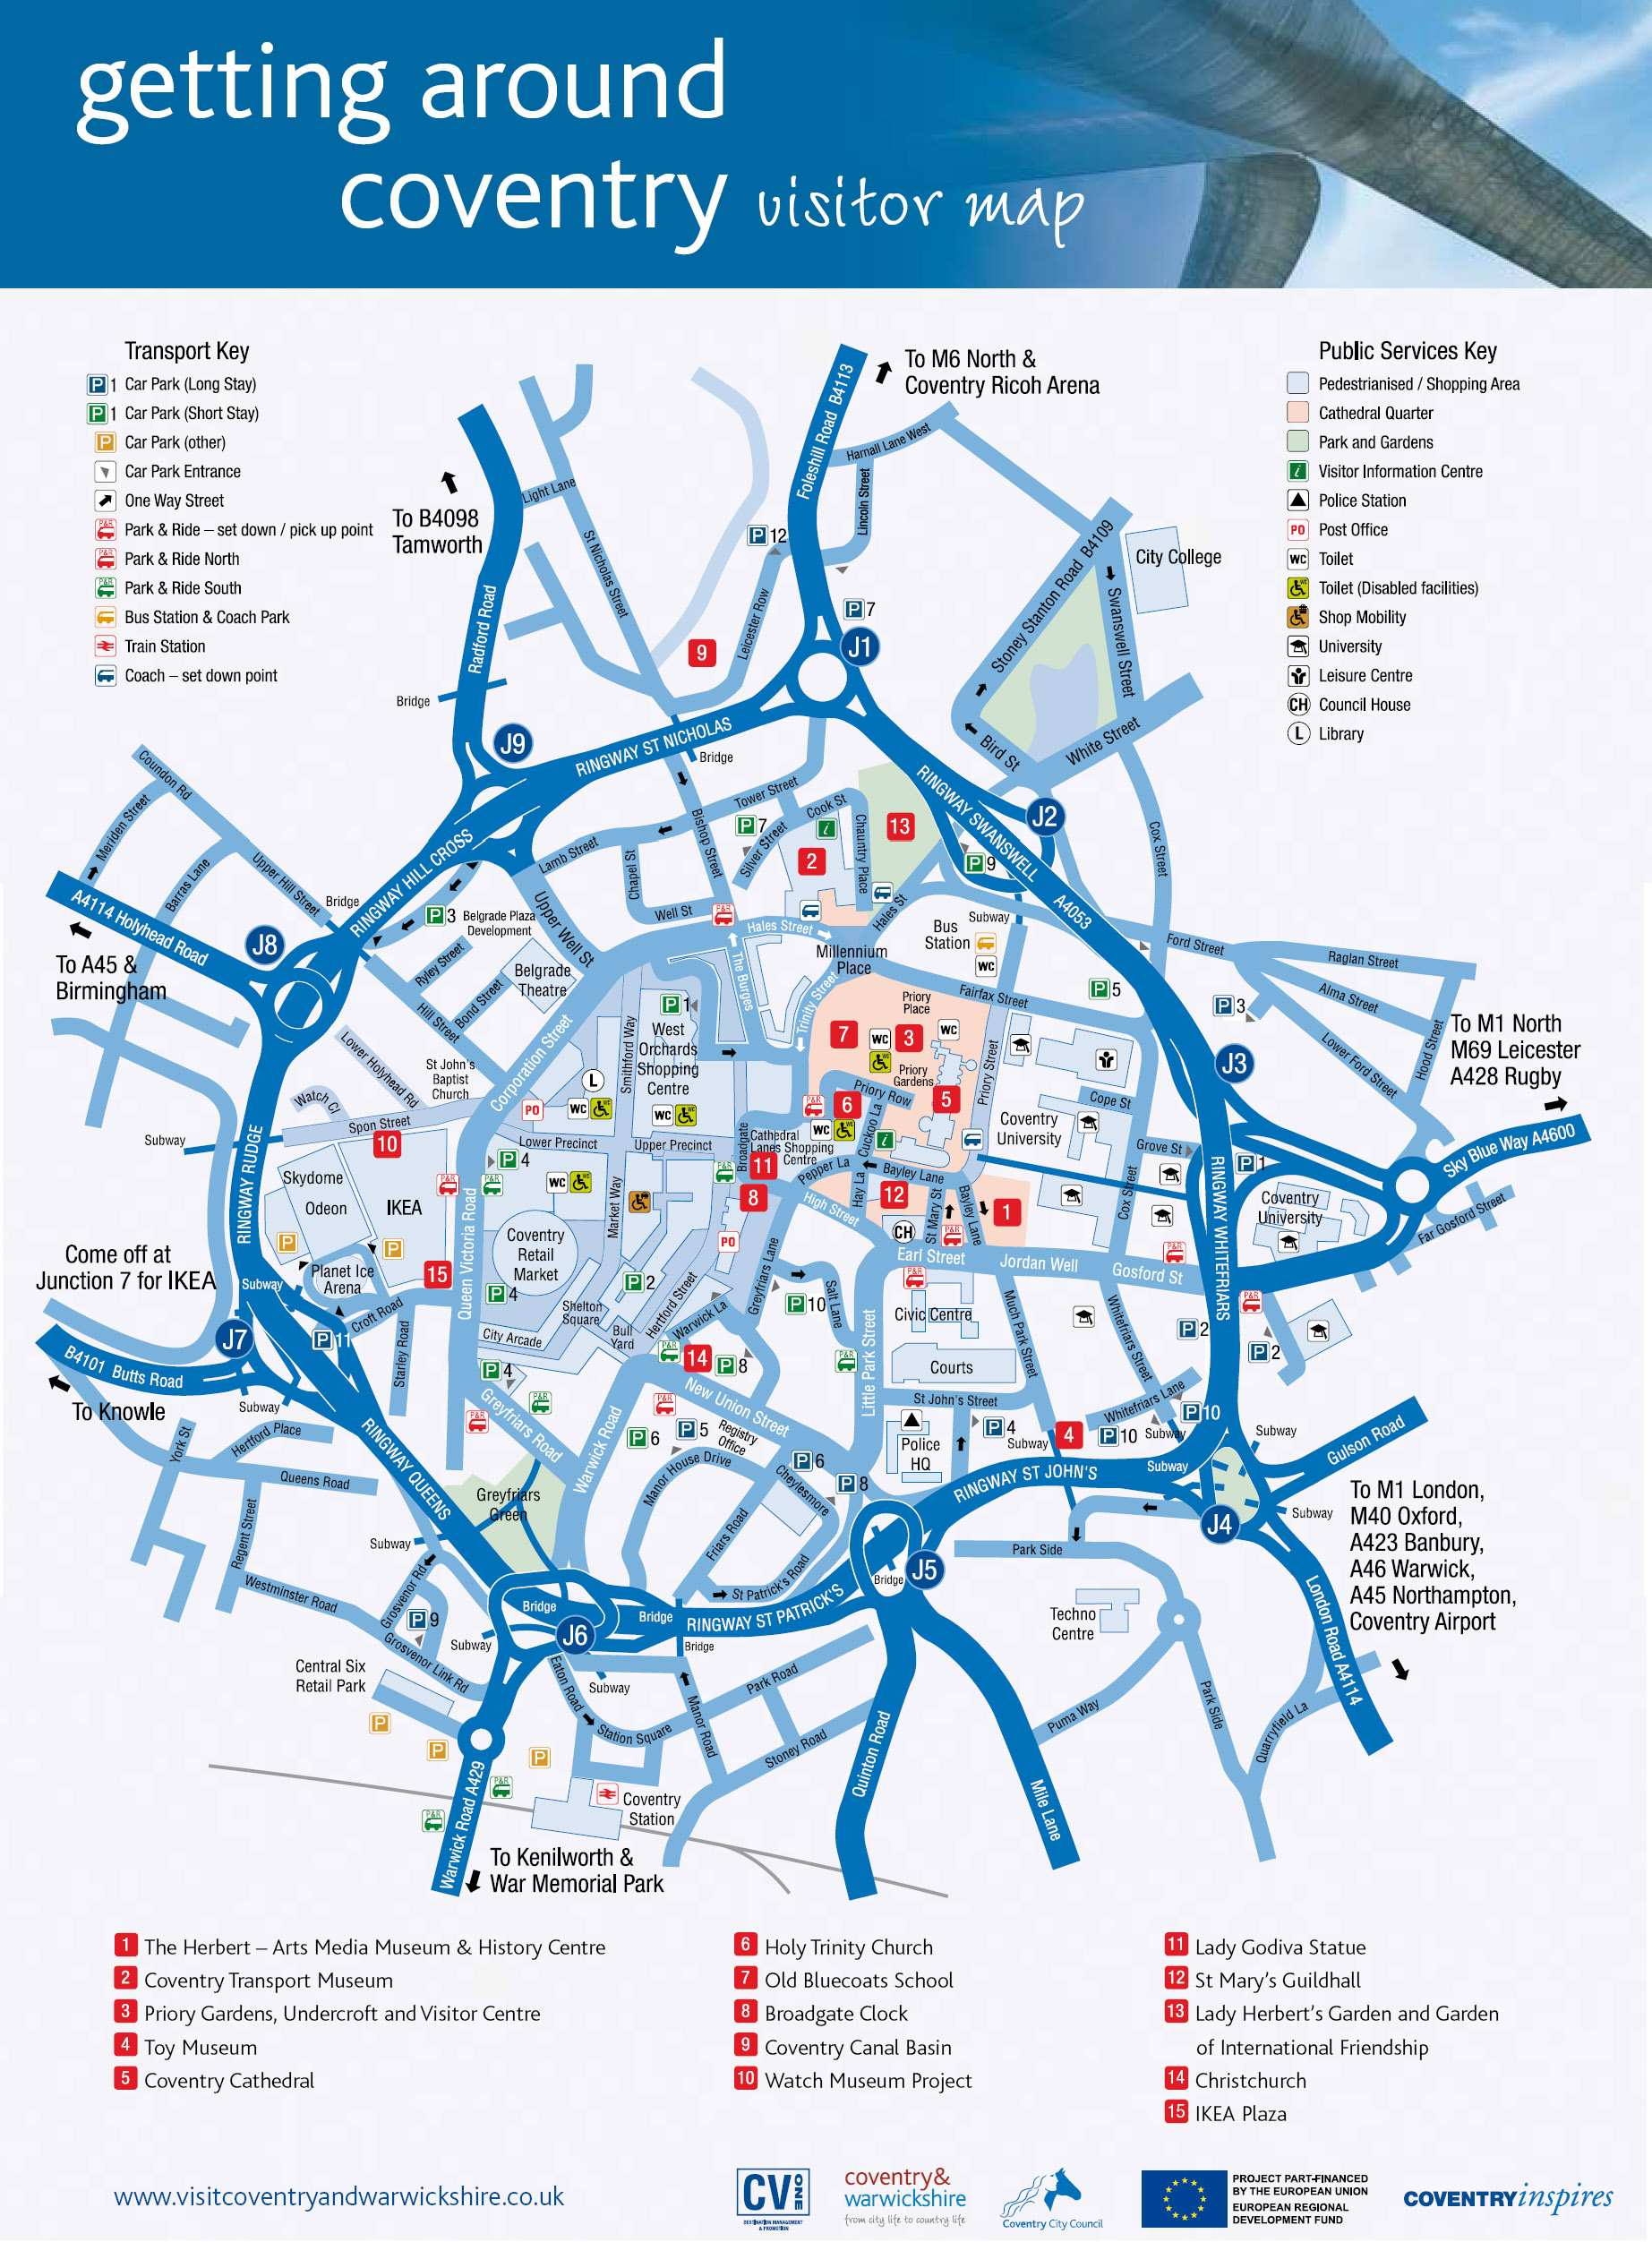 Coventry plan de la ciudad mapas imprimidos de for Coventry plan